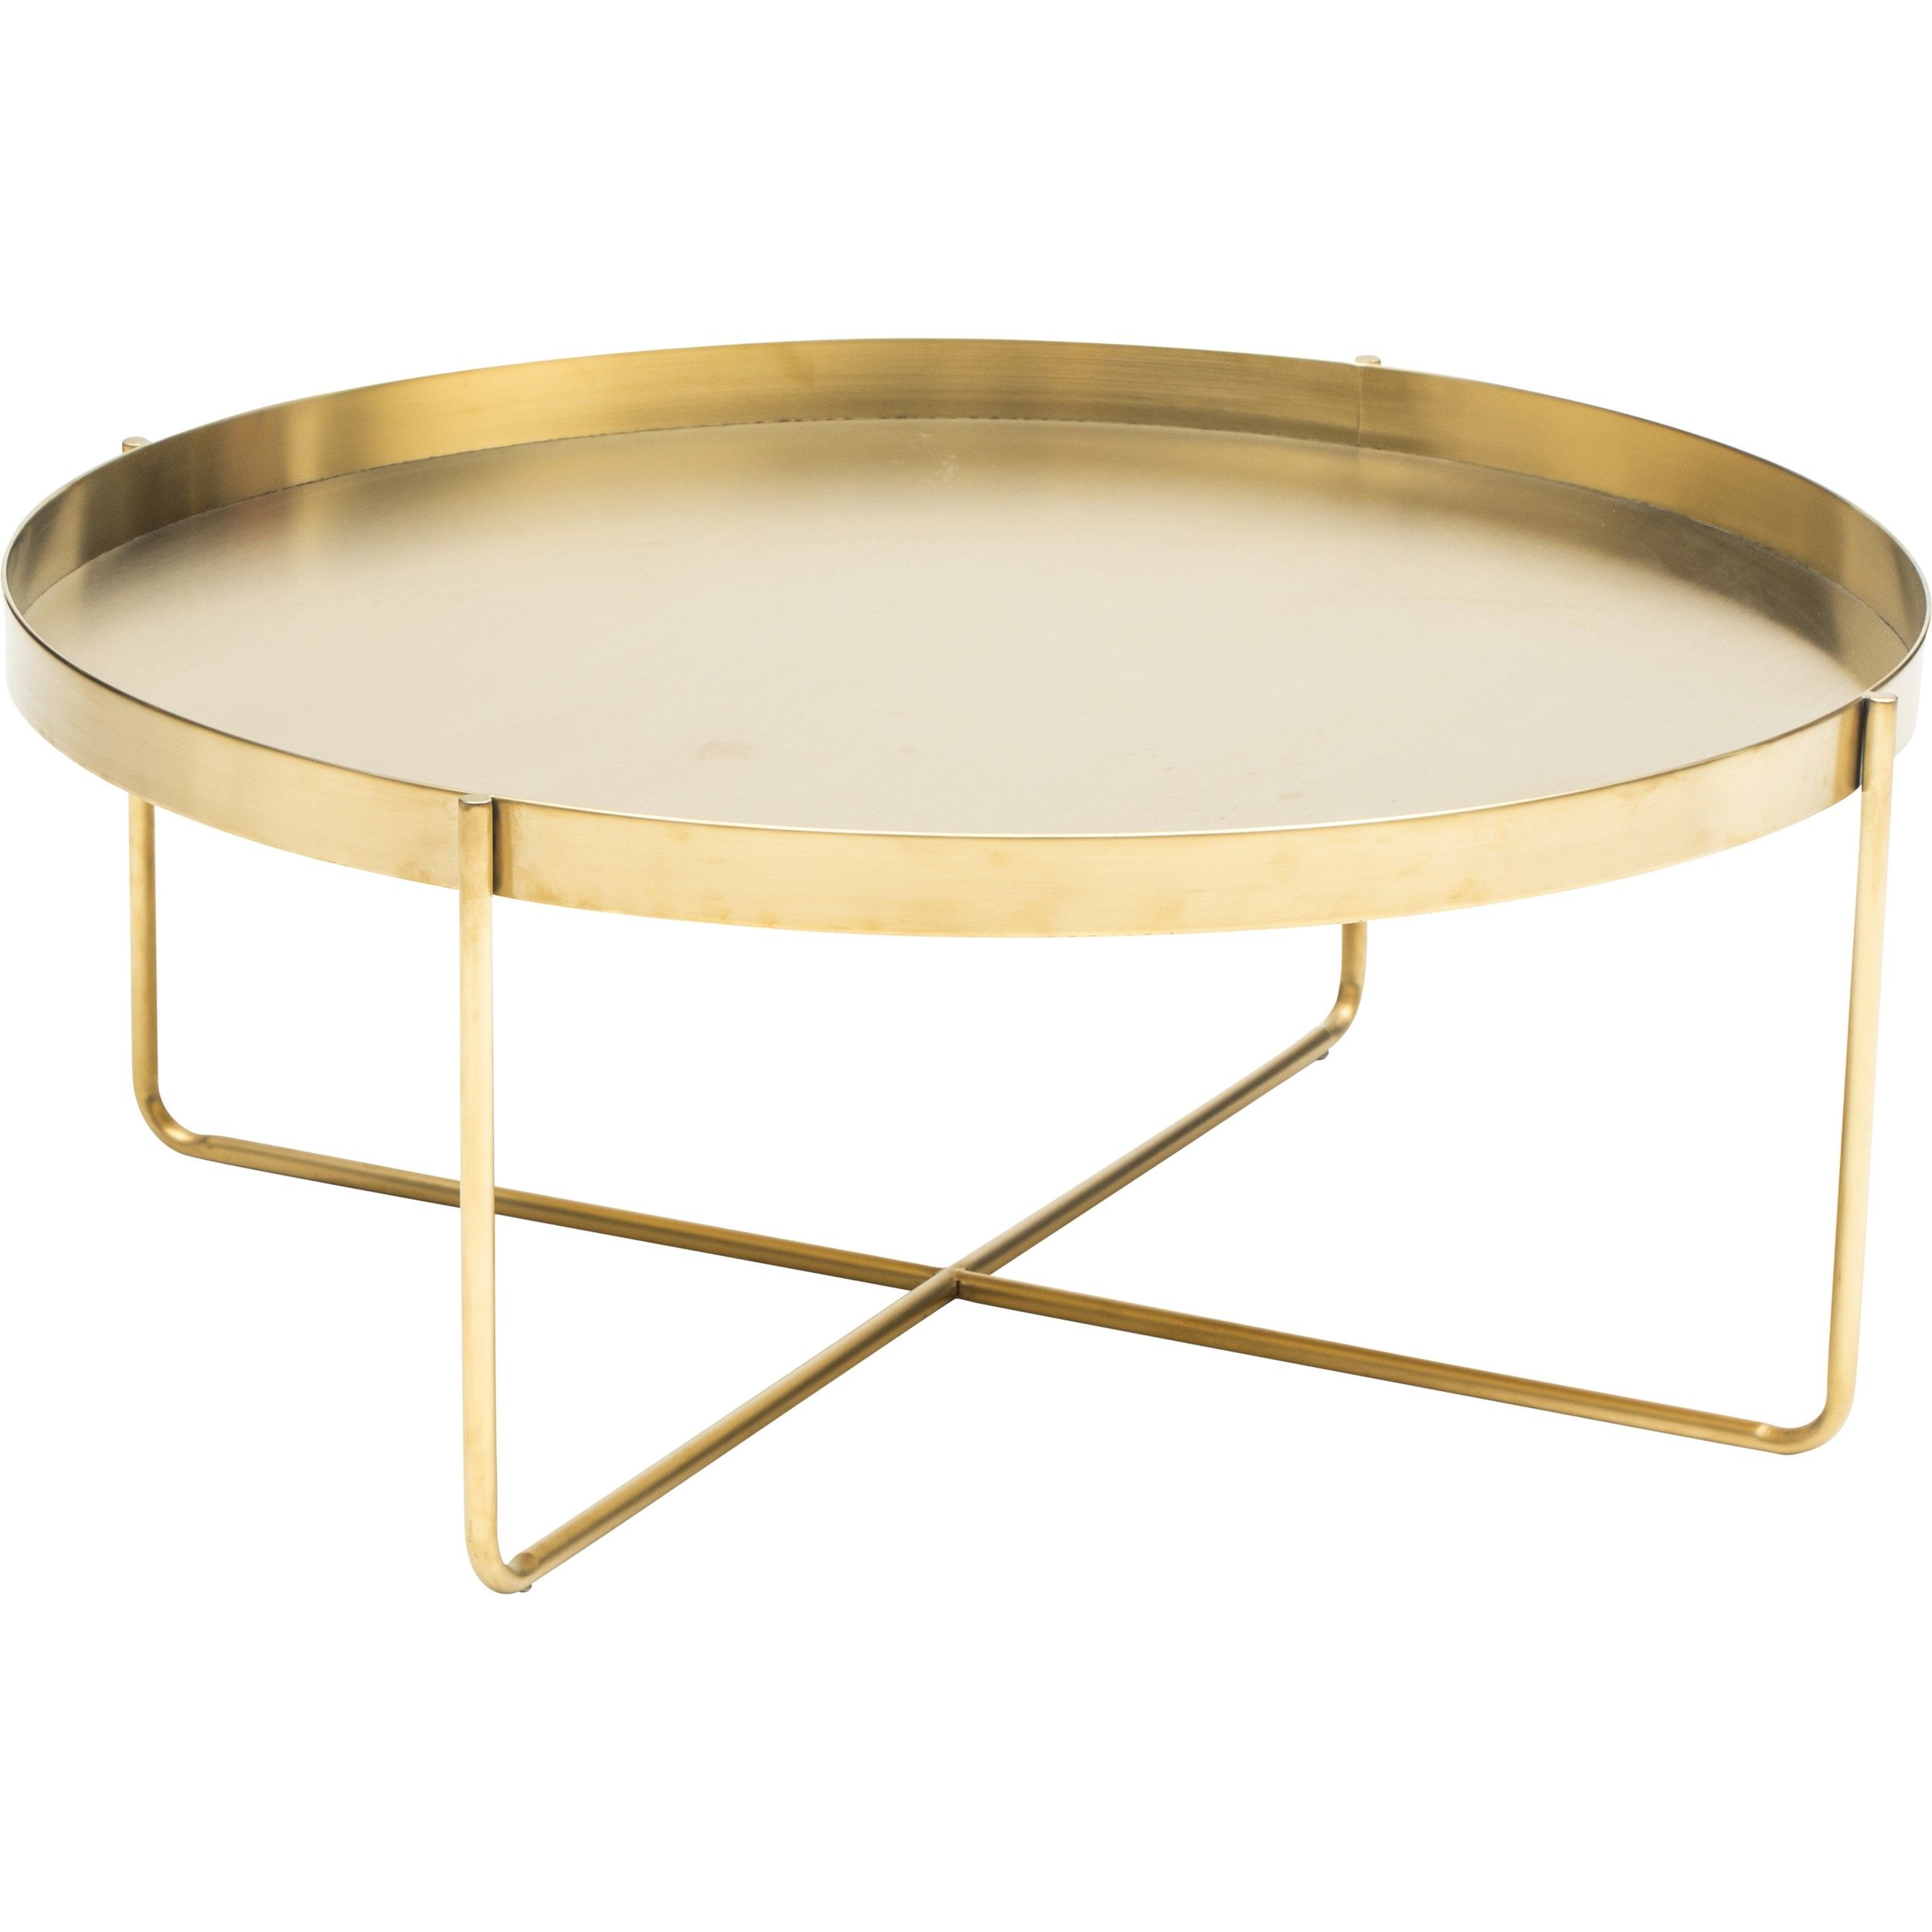 Gaultier Oval Coffee Table, Gold